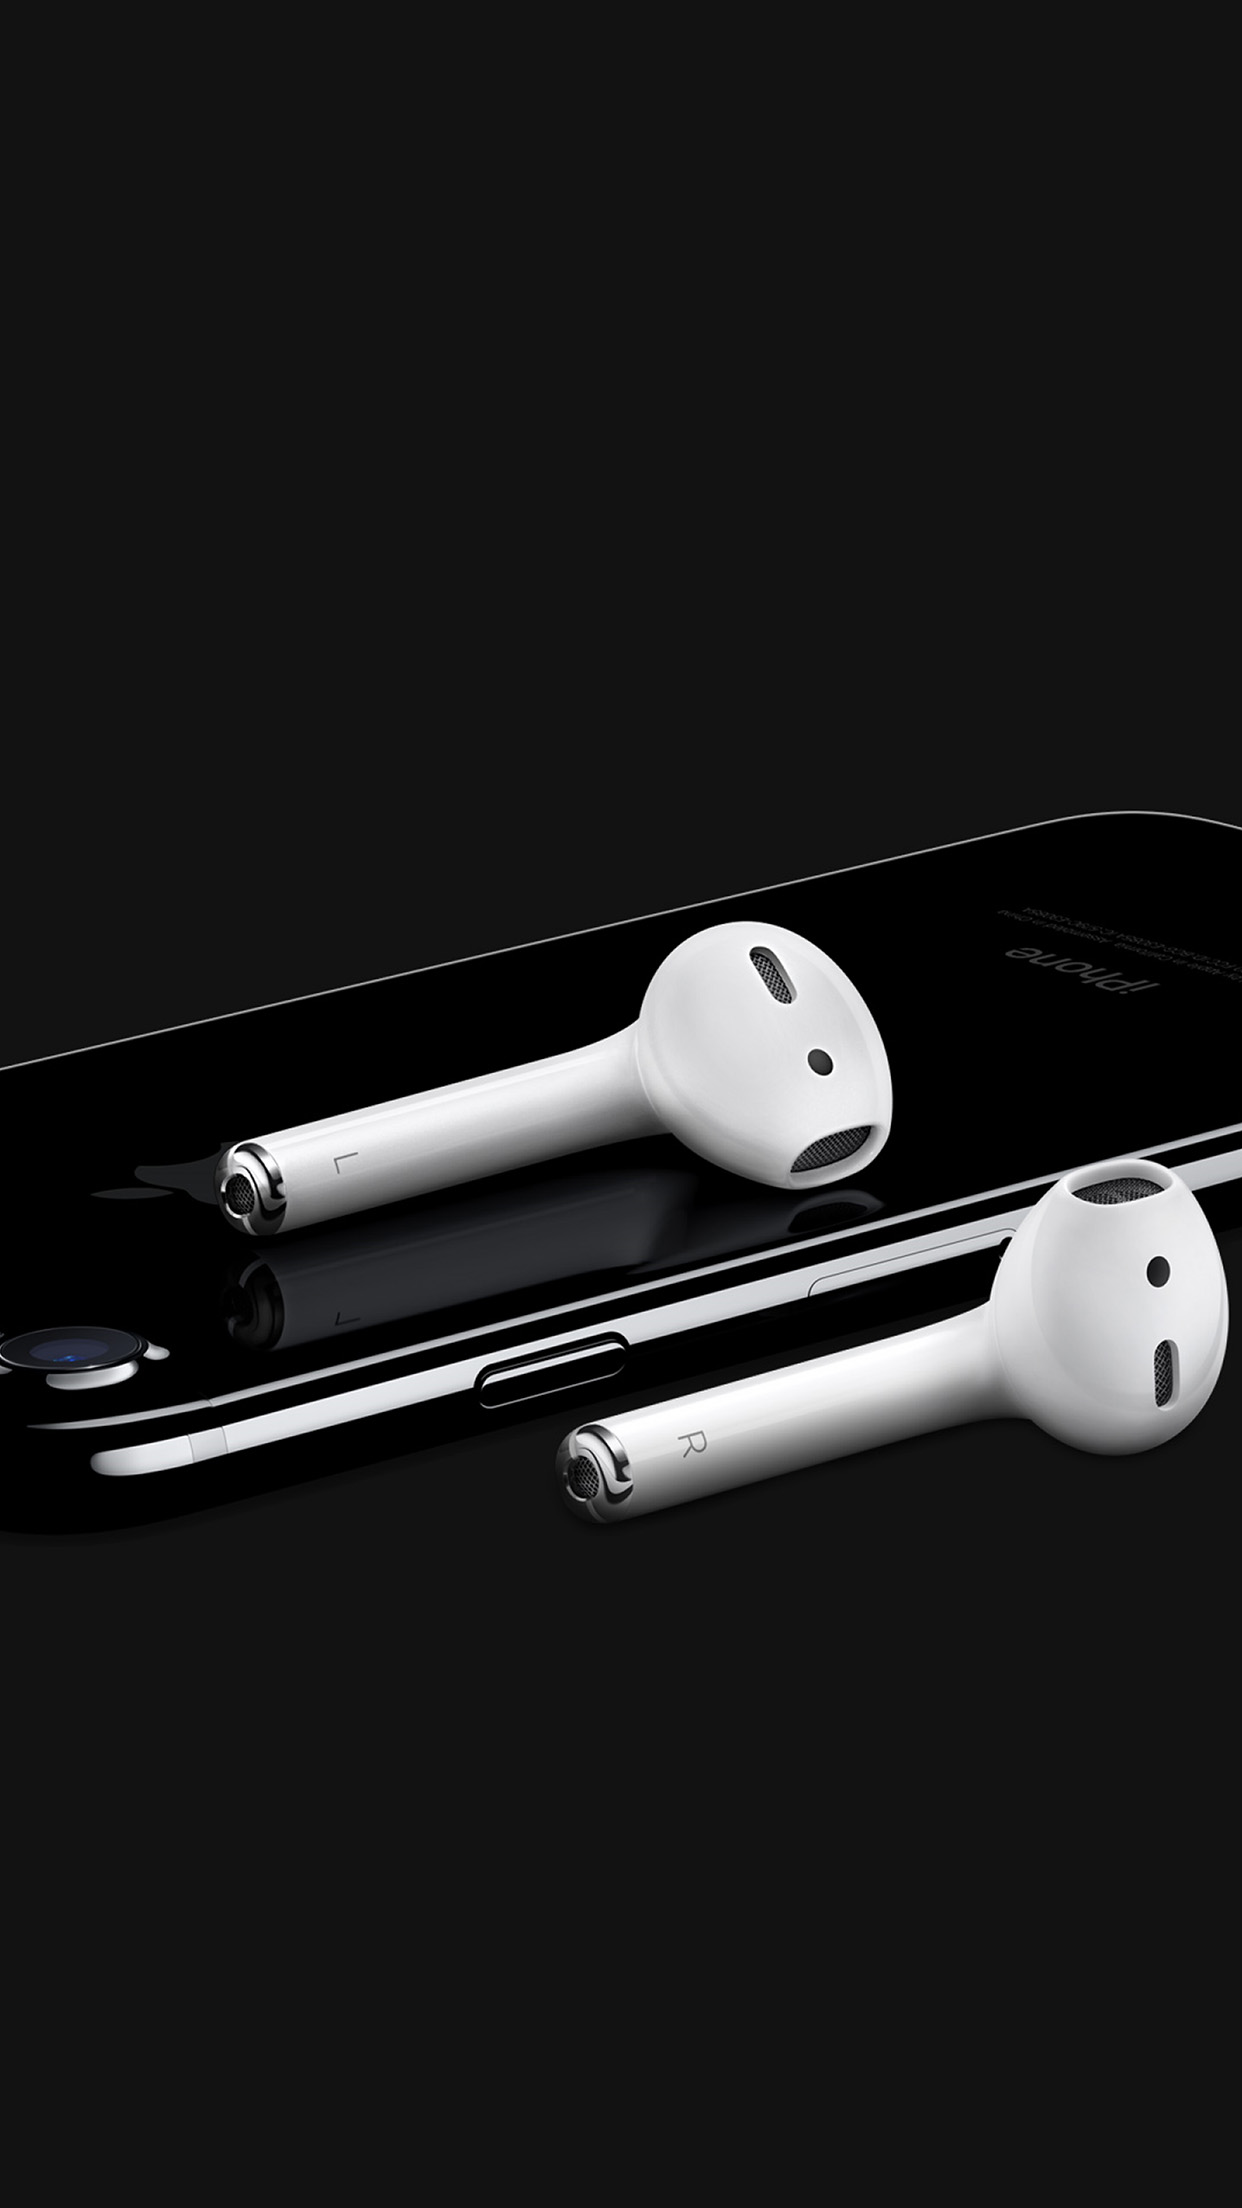 Apple Iphone7 Dark Airpod Art Illustration Android Wallpaper